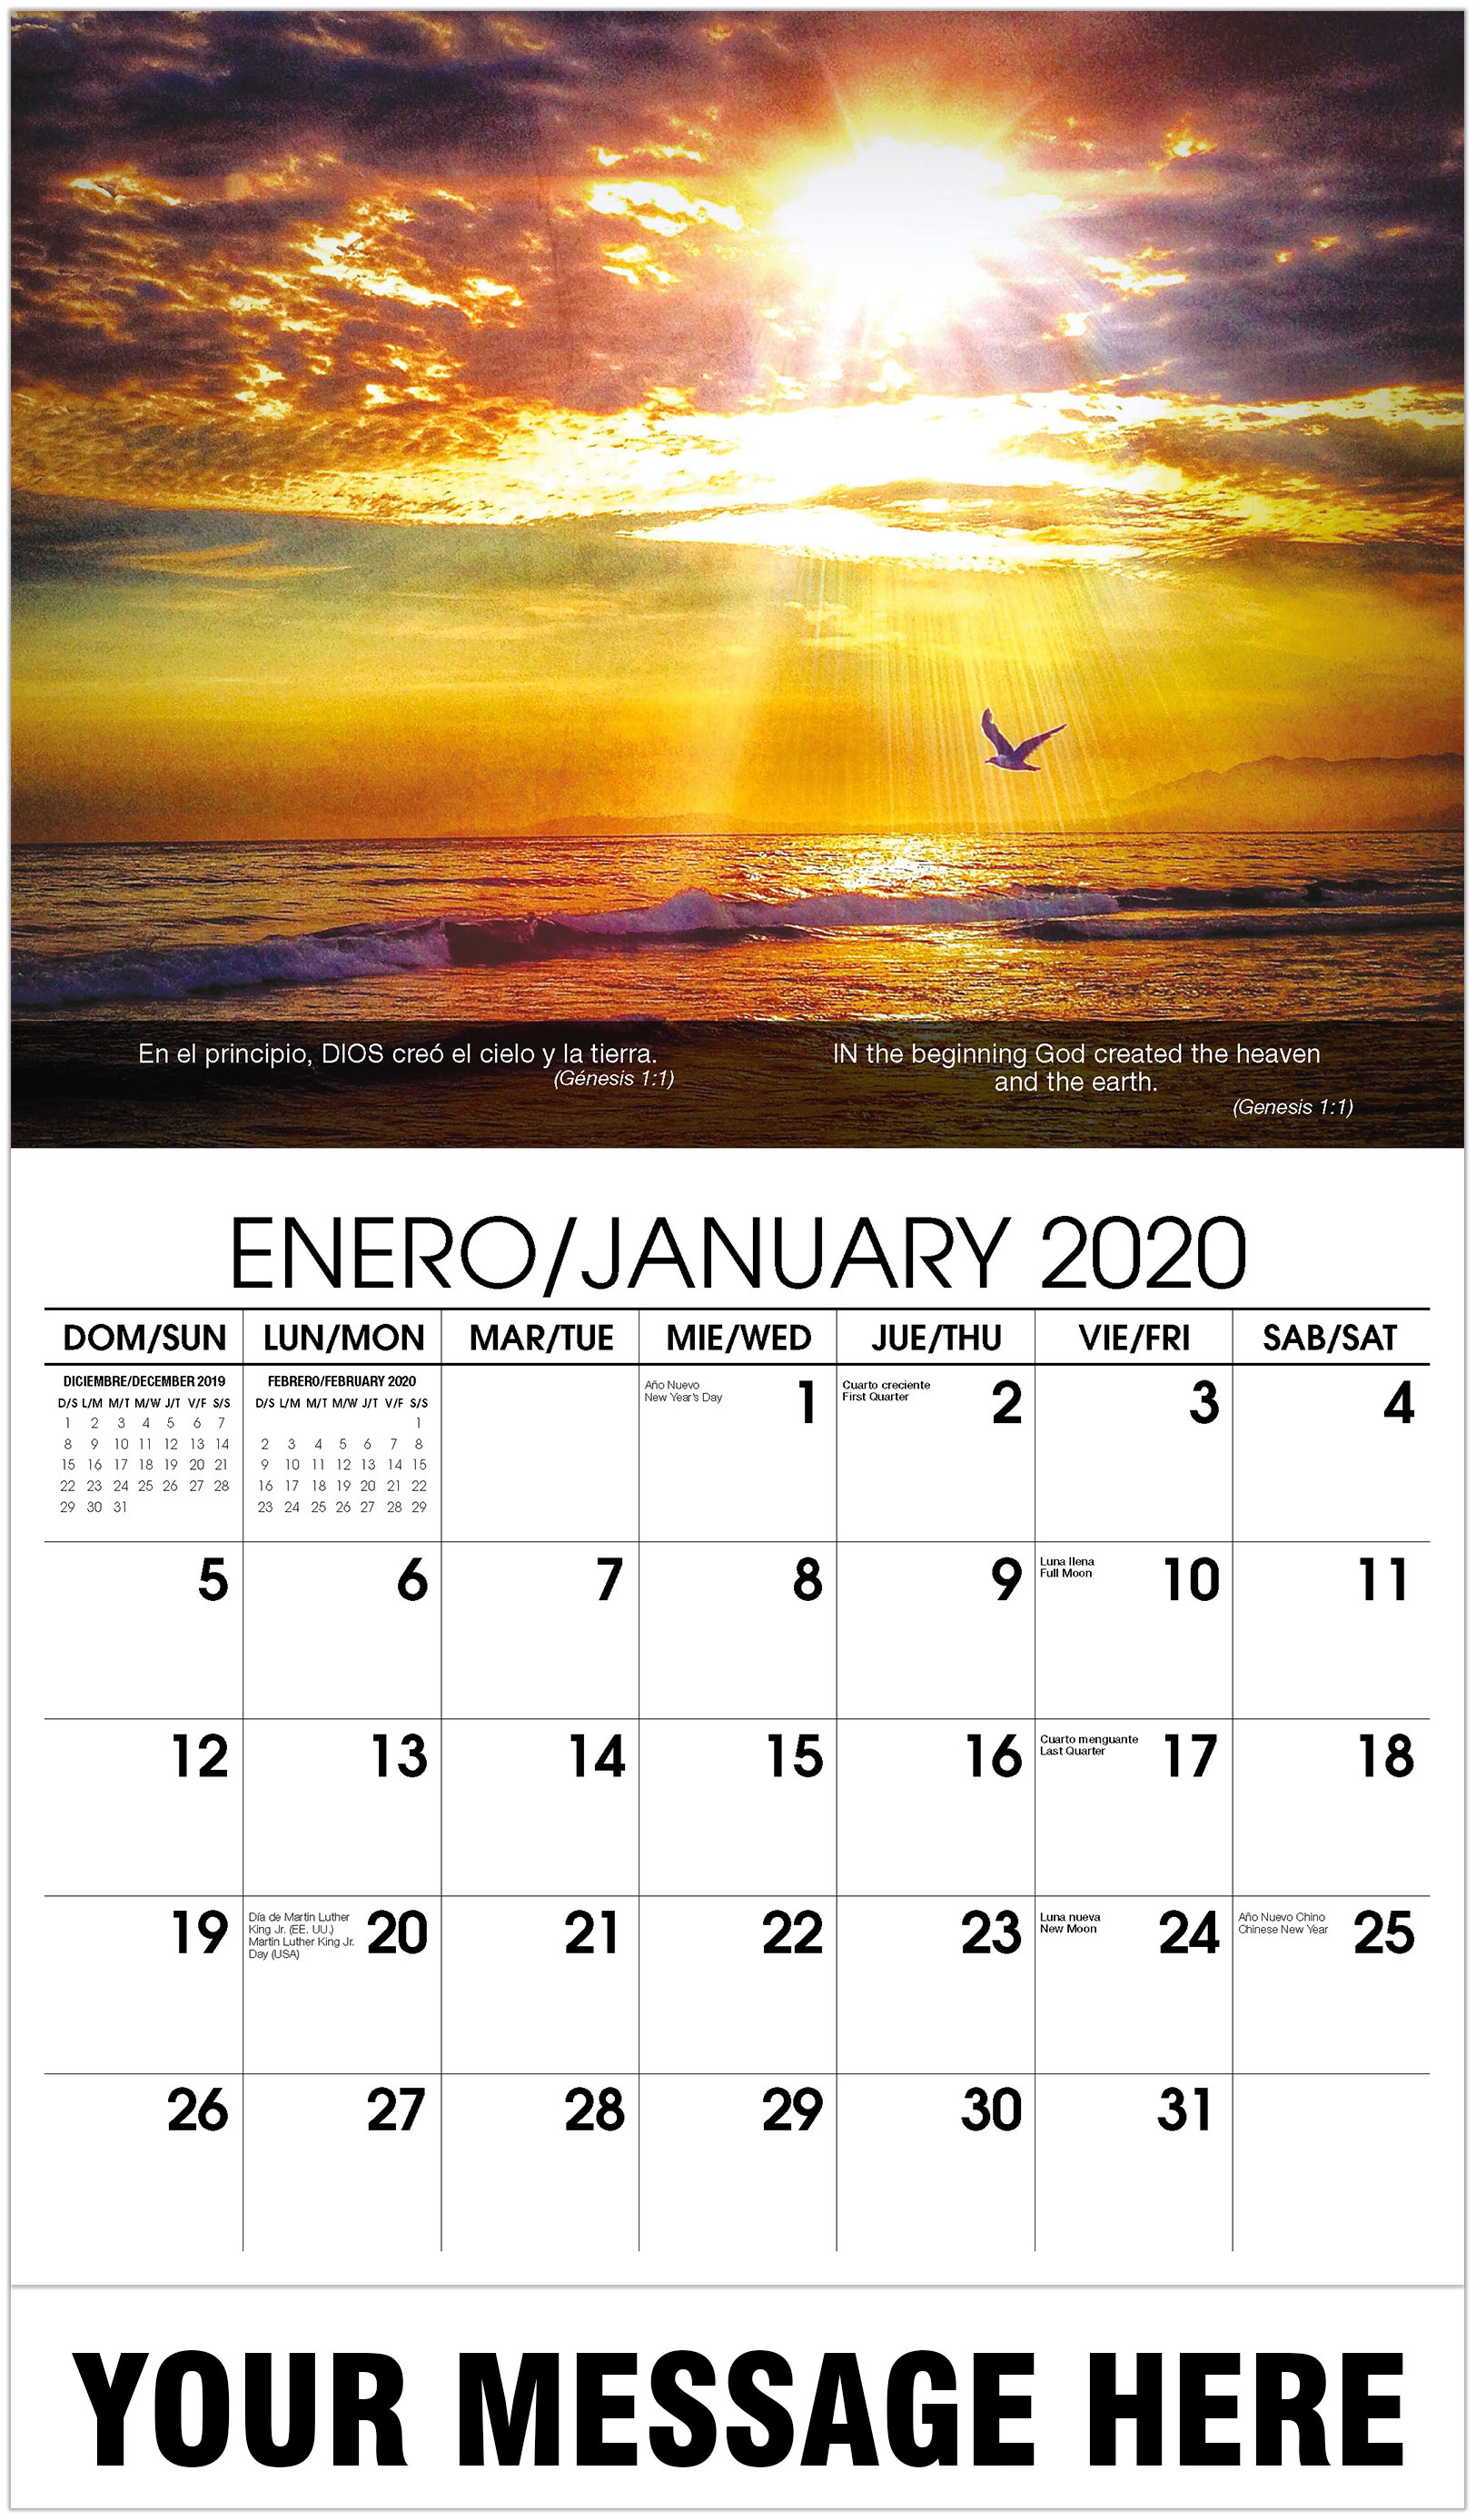 2020 Bilingual Promo Calendar - Bird And Sunset - January